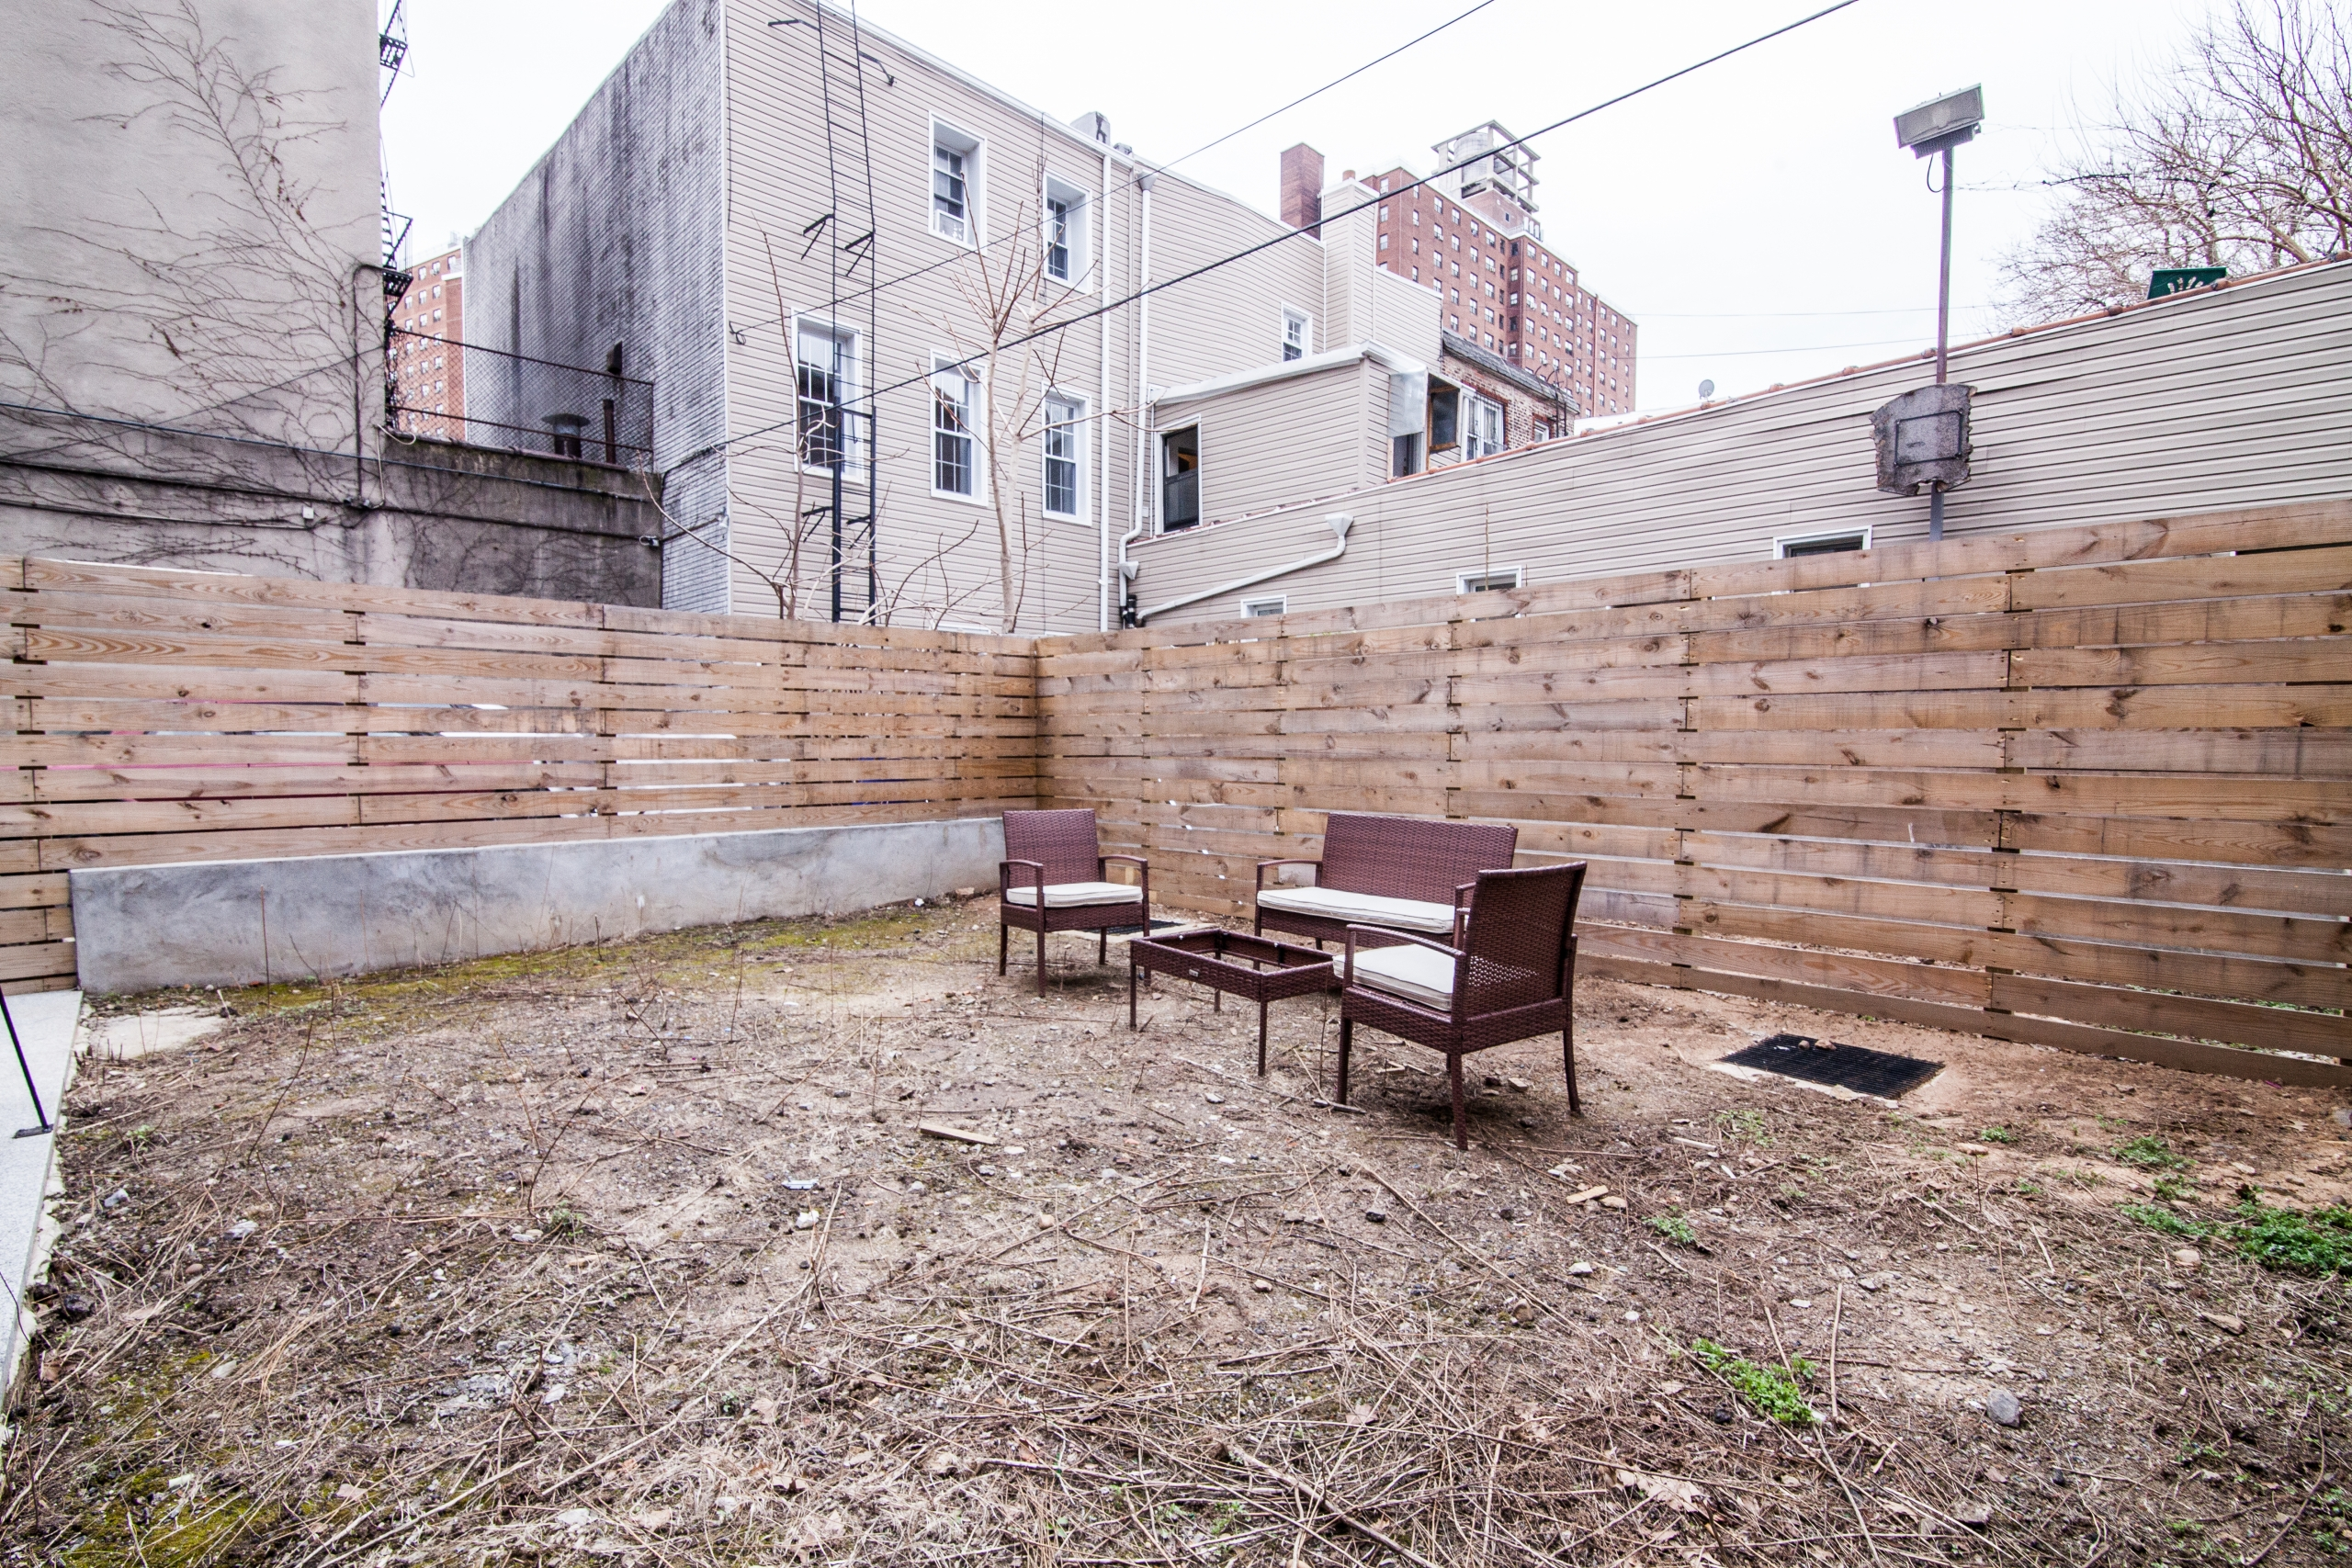 173 Knickerbocker Avenue, Apt 1-B - 1